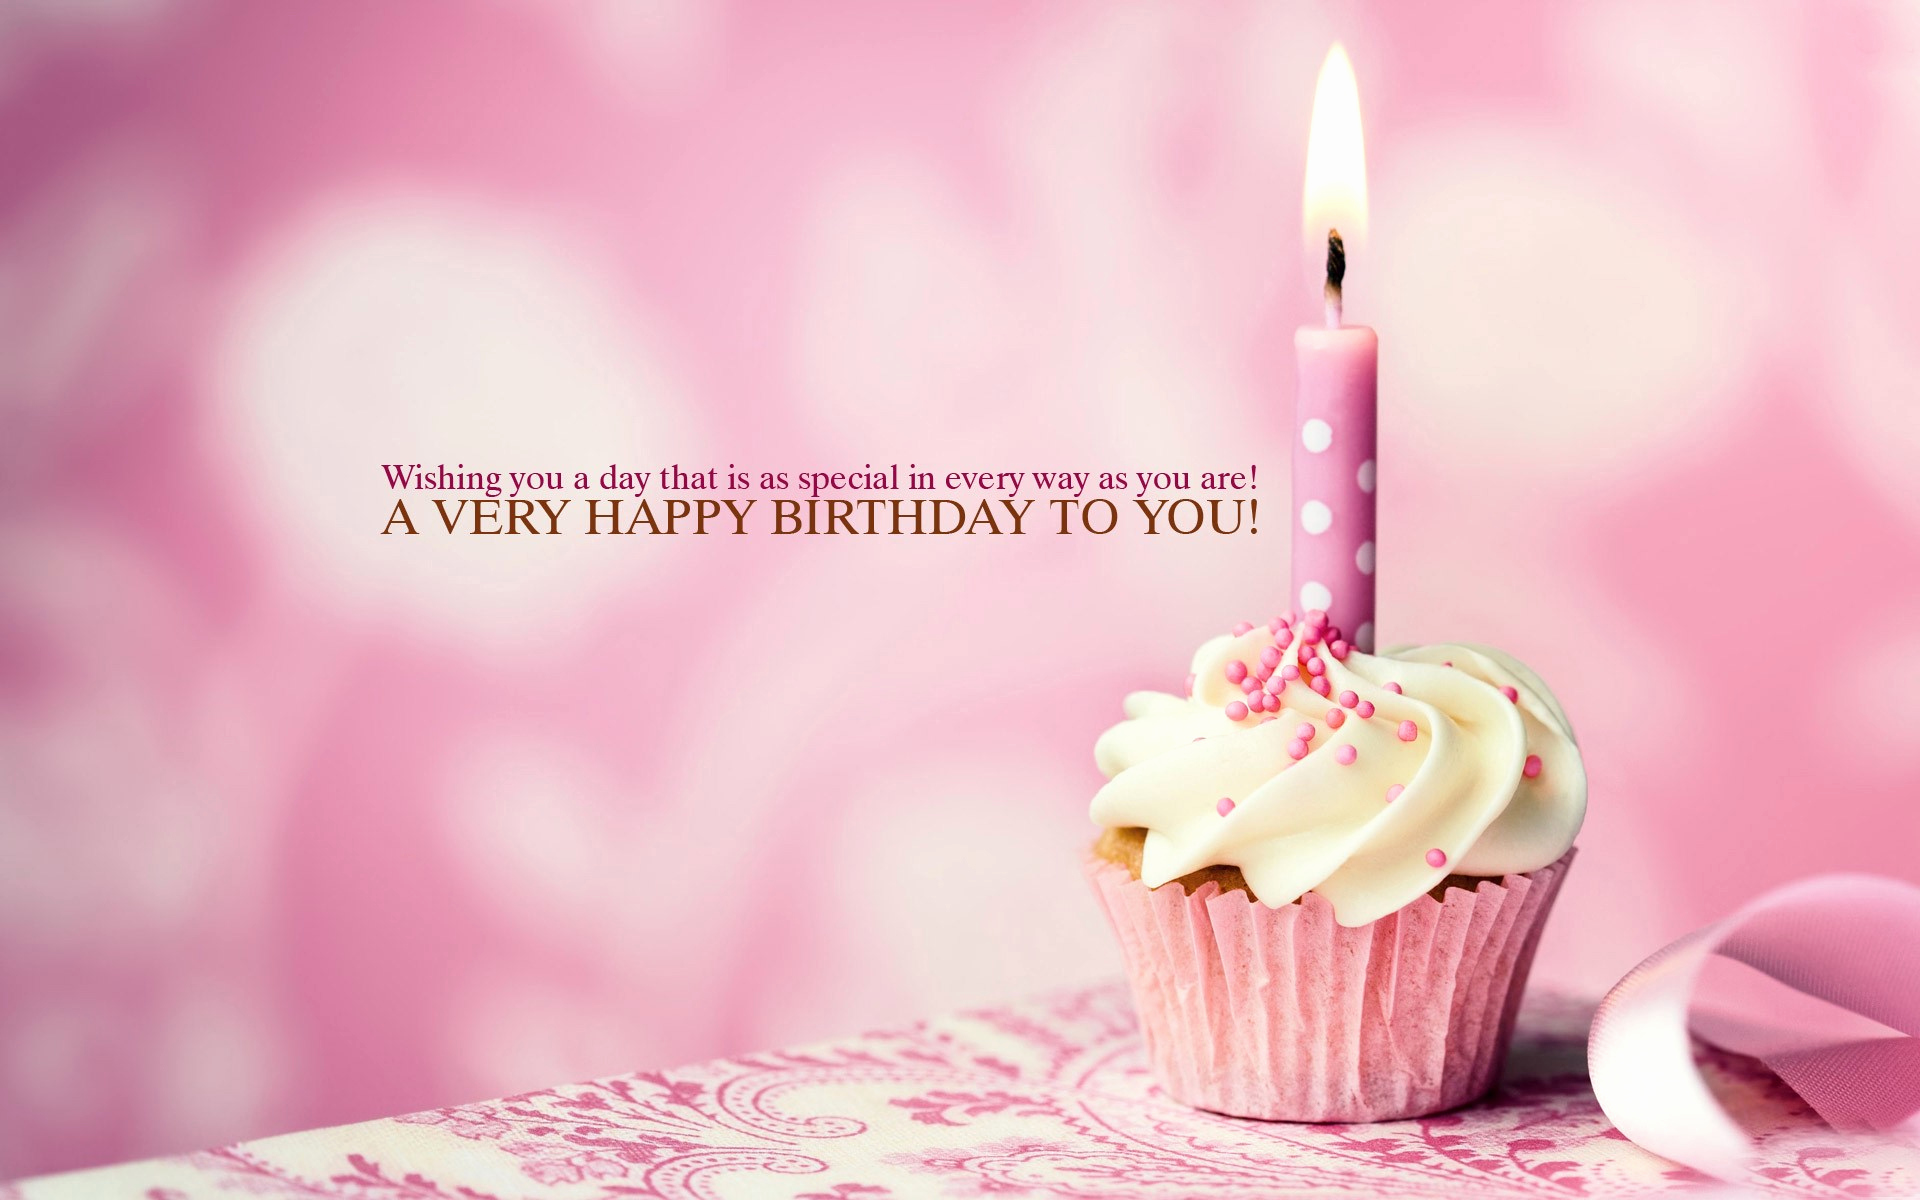 Happy Bday Wallpapers Free Fresh Quotes for Happy Birthday Greetings Desktop Wallpapers